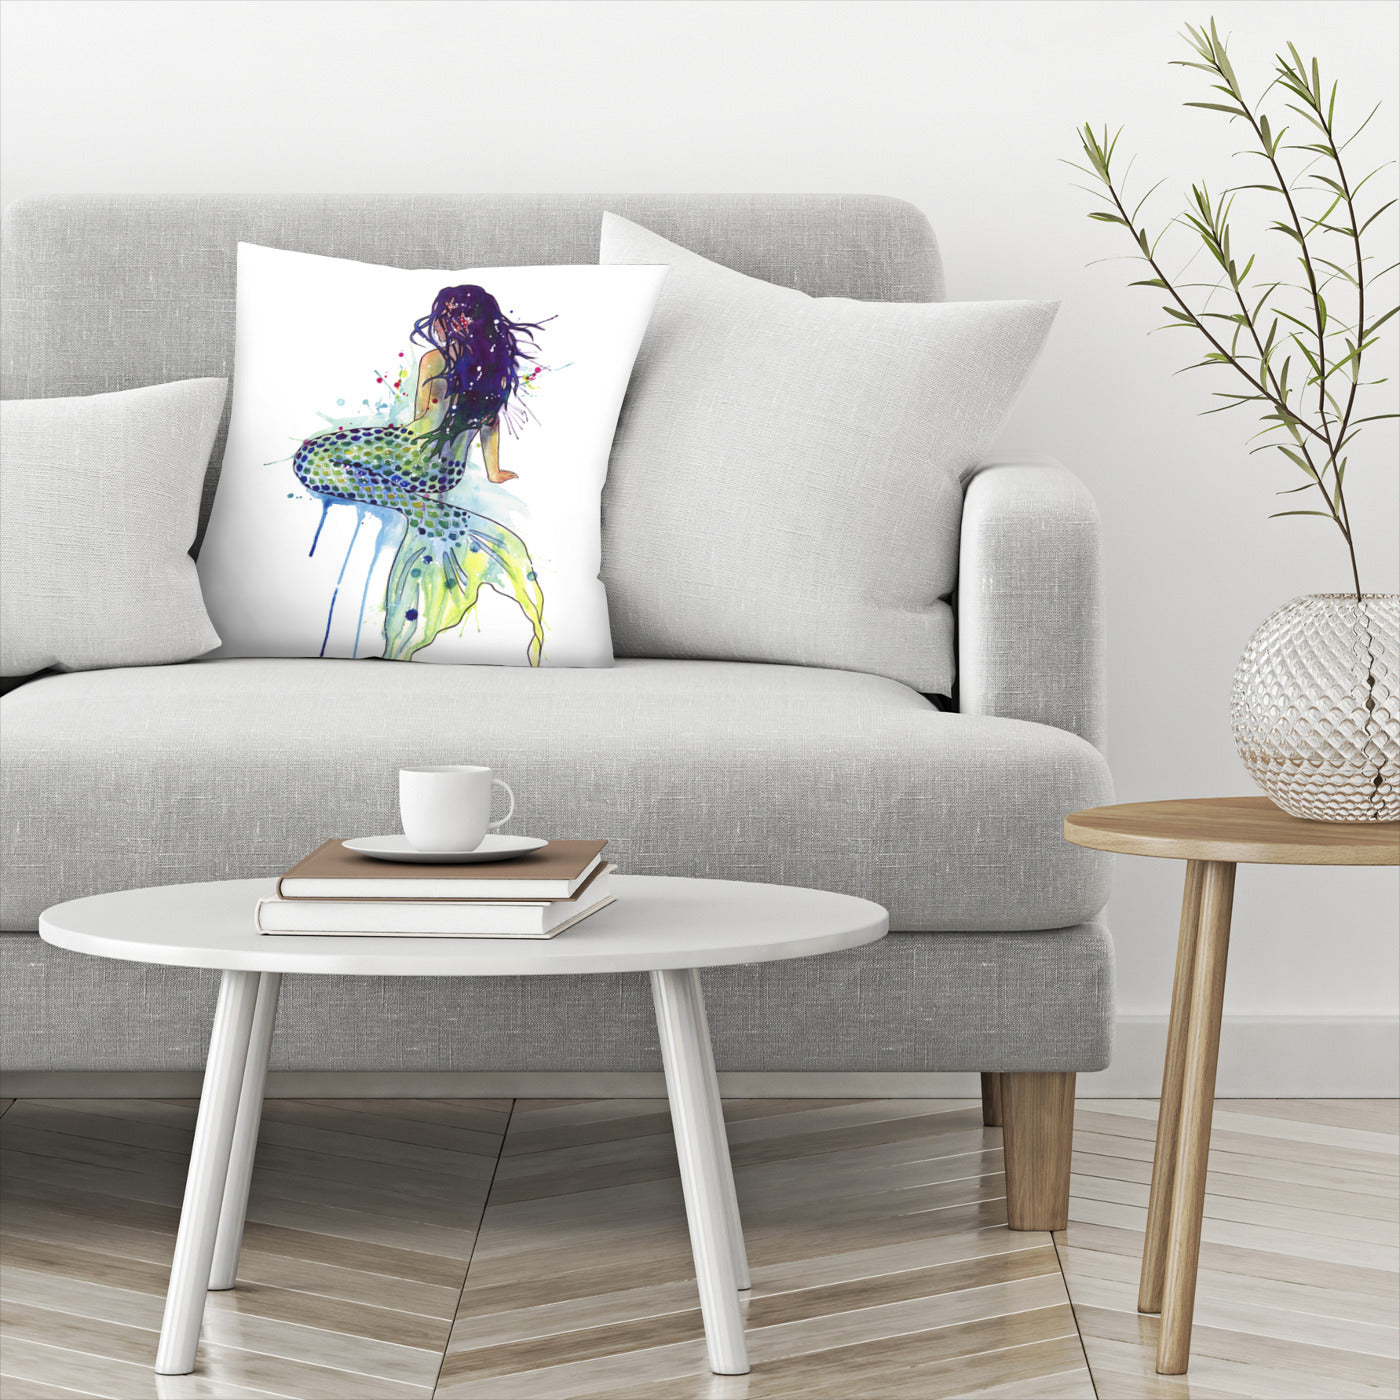 Mermaid by Sam Nagel Decorative Pillow - Decorative Pillow - Americanflat